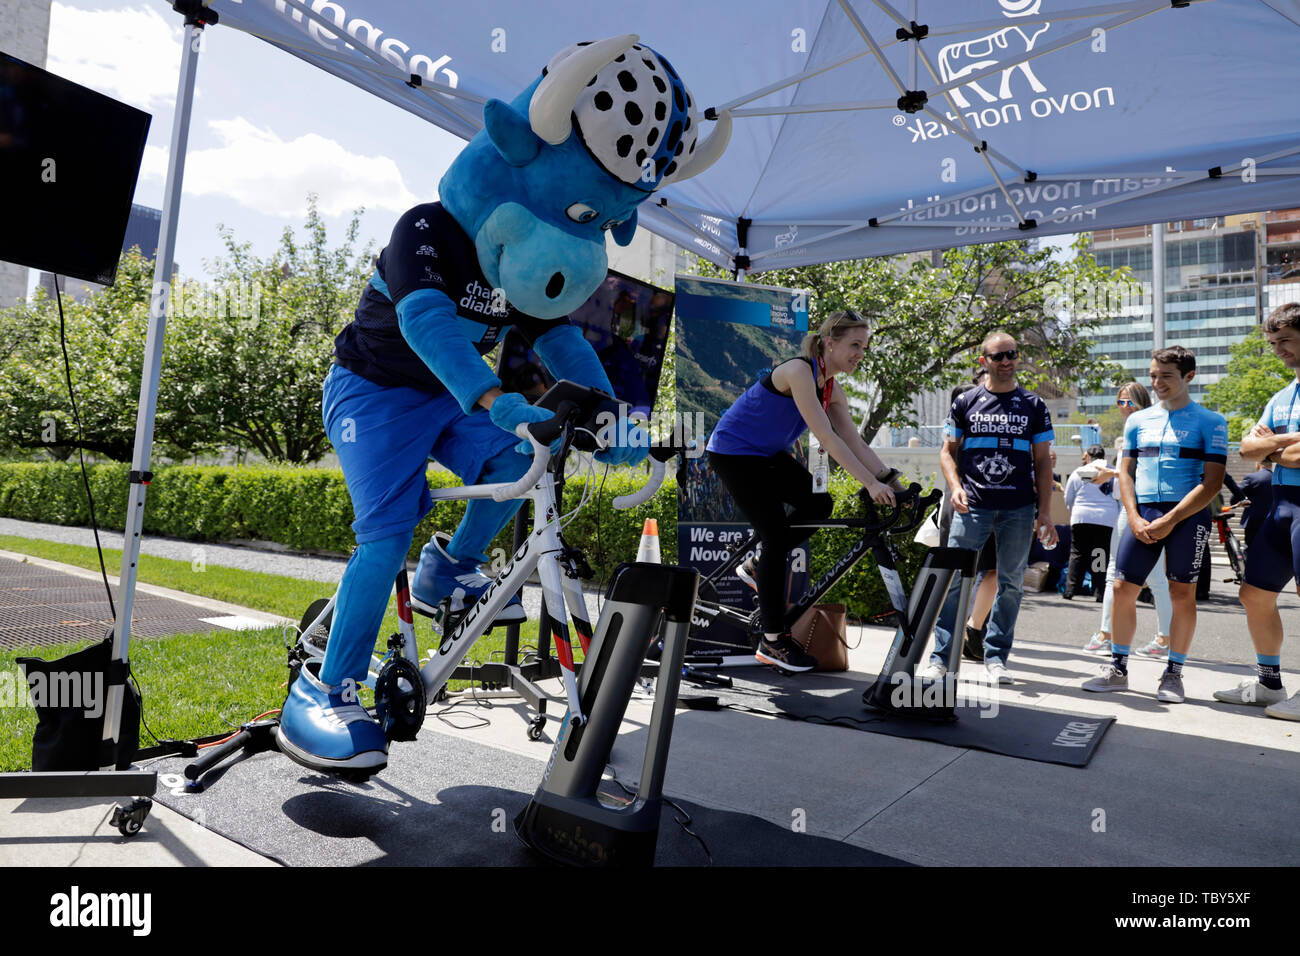 United Nations. 3rd June, 2019. A woman tries an indoor bike simulator during an event to commemorate the first World Bike Day at the UN headquarters in New York, June 3, 2019. The United Nations on Monday commemorated World Bicycle Day to acknowledge the uniqueness, longevity and versatility of bicycles. Credit: Li Muzi/Xinhua/Alamy Live News - Stock Image